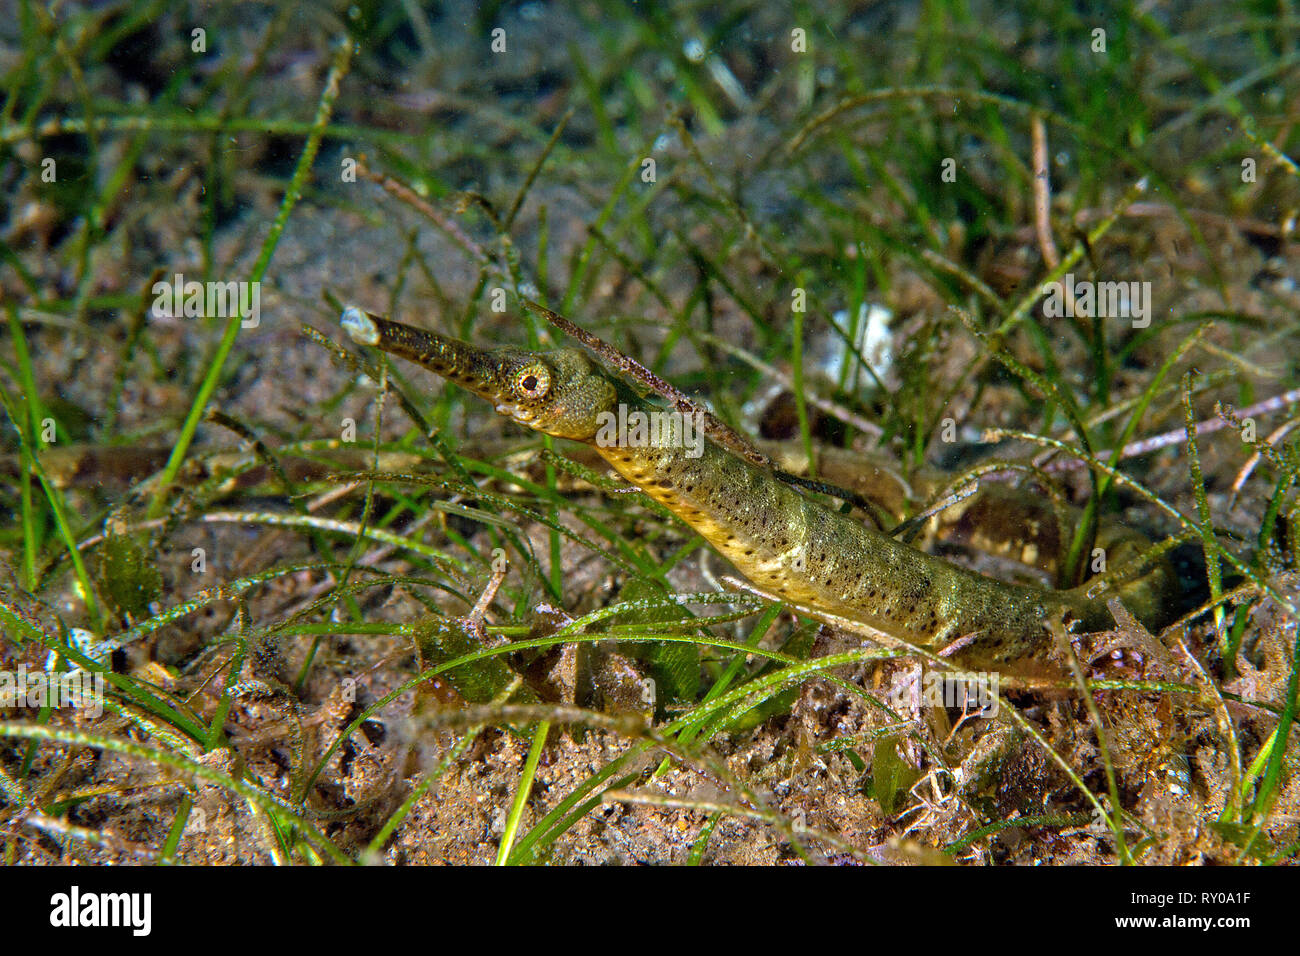 Short-tailed Pipefish or Double-ended Pipefish (Trachyrhamphus bicoarctatus) between sea grass, Negros, Visayas, Philippines - Stock Image